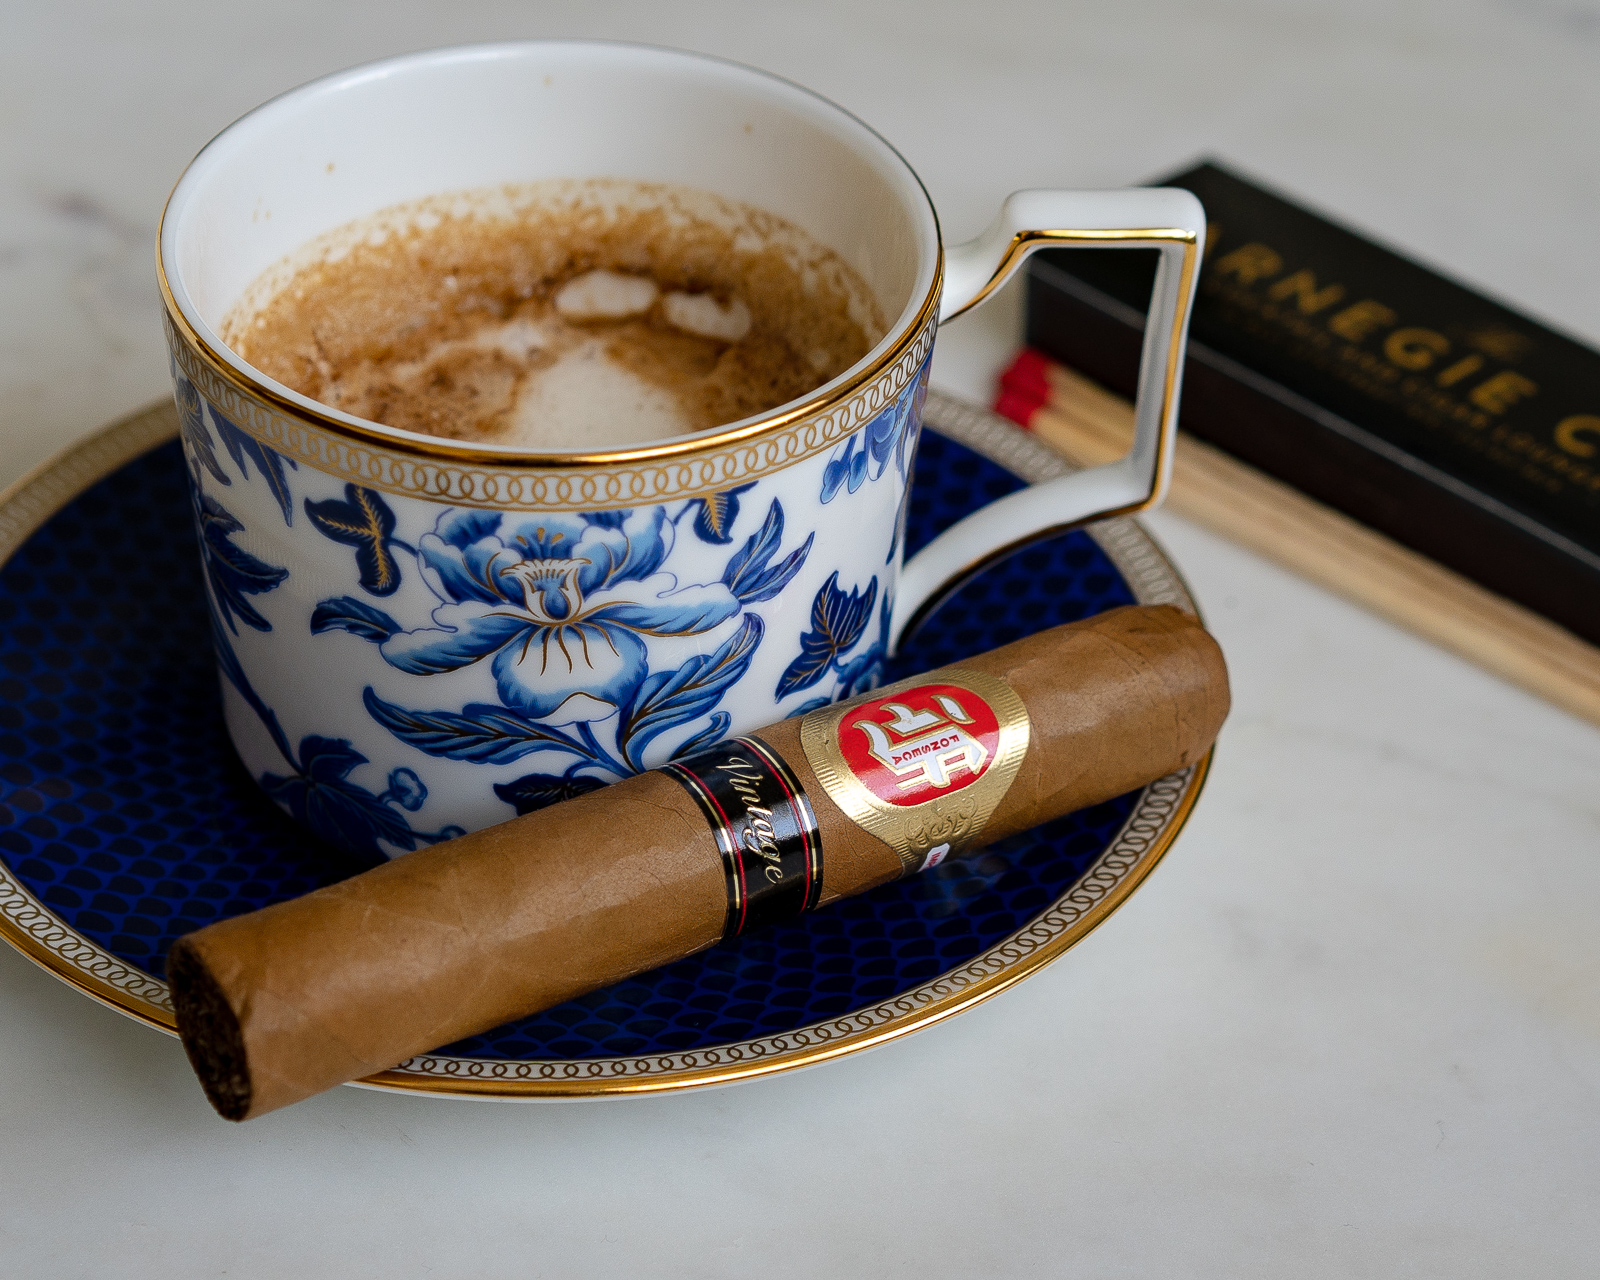 Fonseca Vintage Review